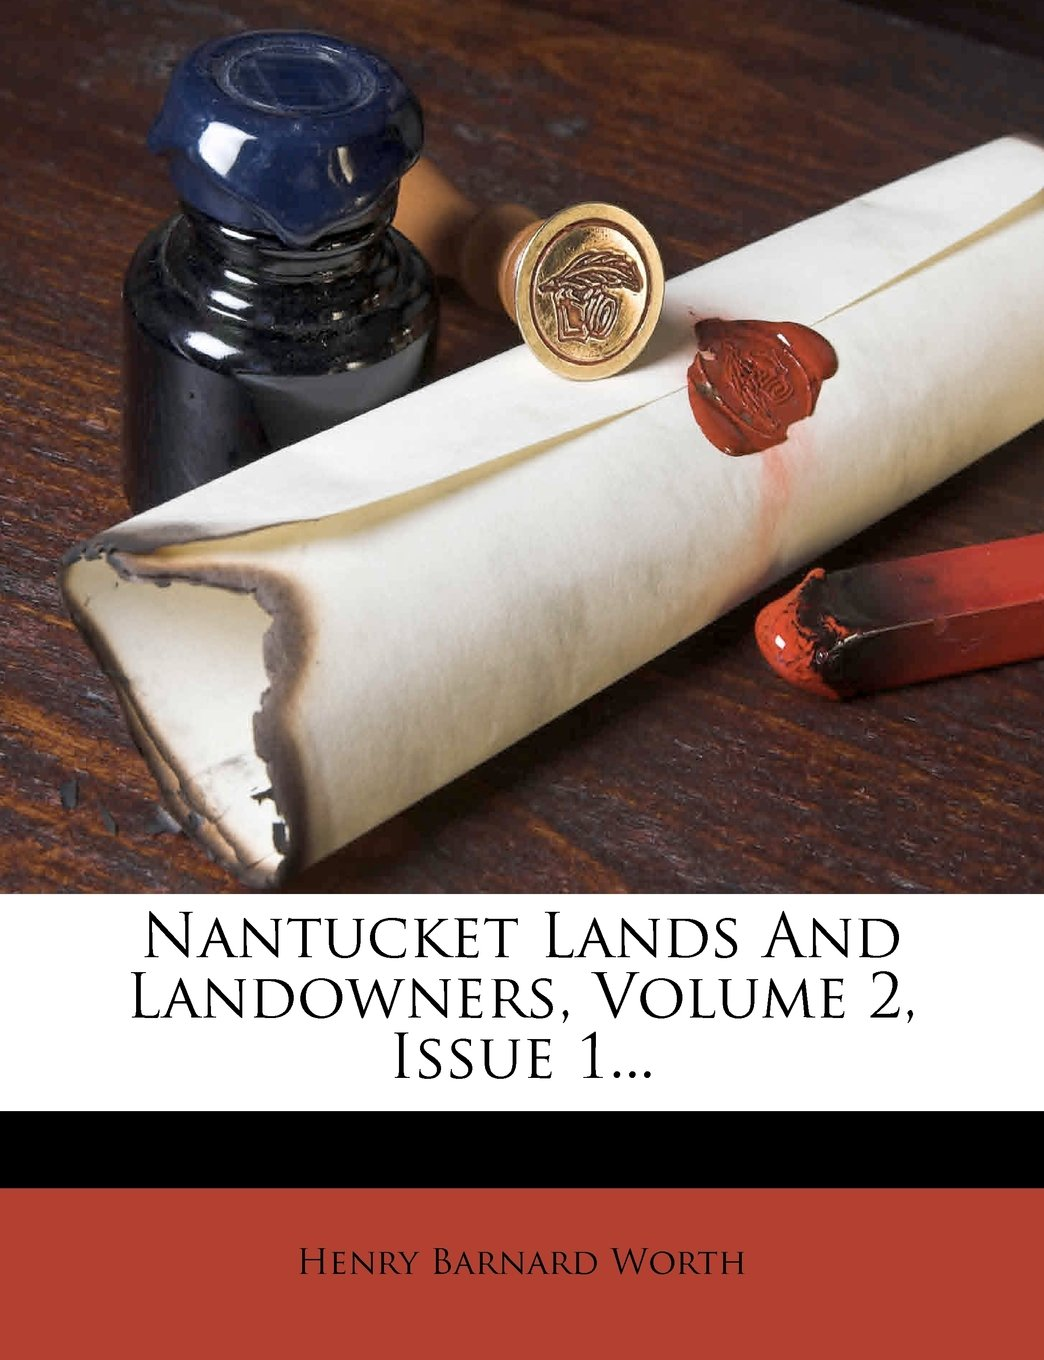 Nantucket lands and landowners (1901) VOLUME 2